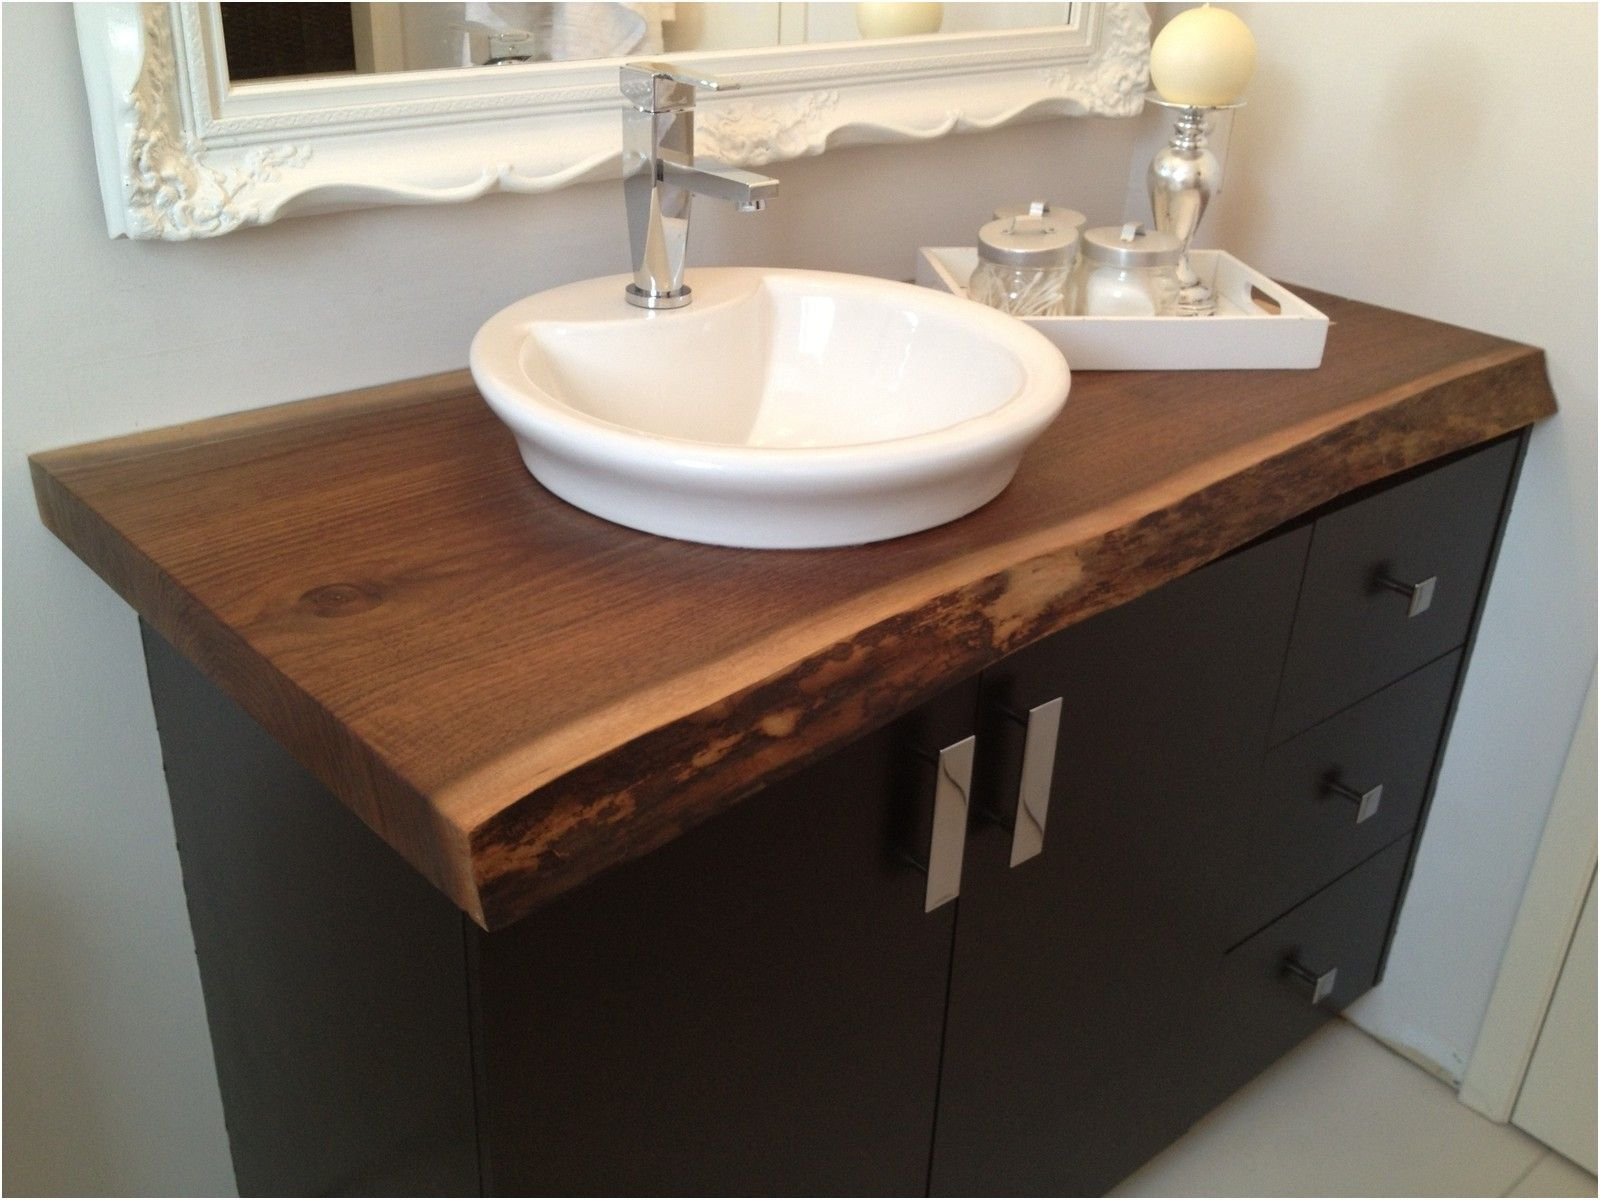 Bathroom Amazing Round White Vessel Sink With Wood Rustic Modern